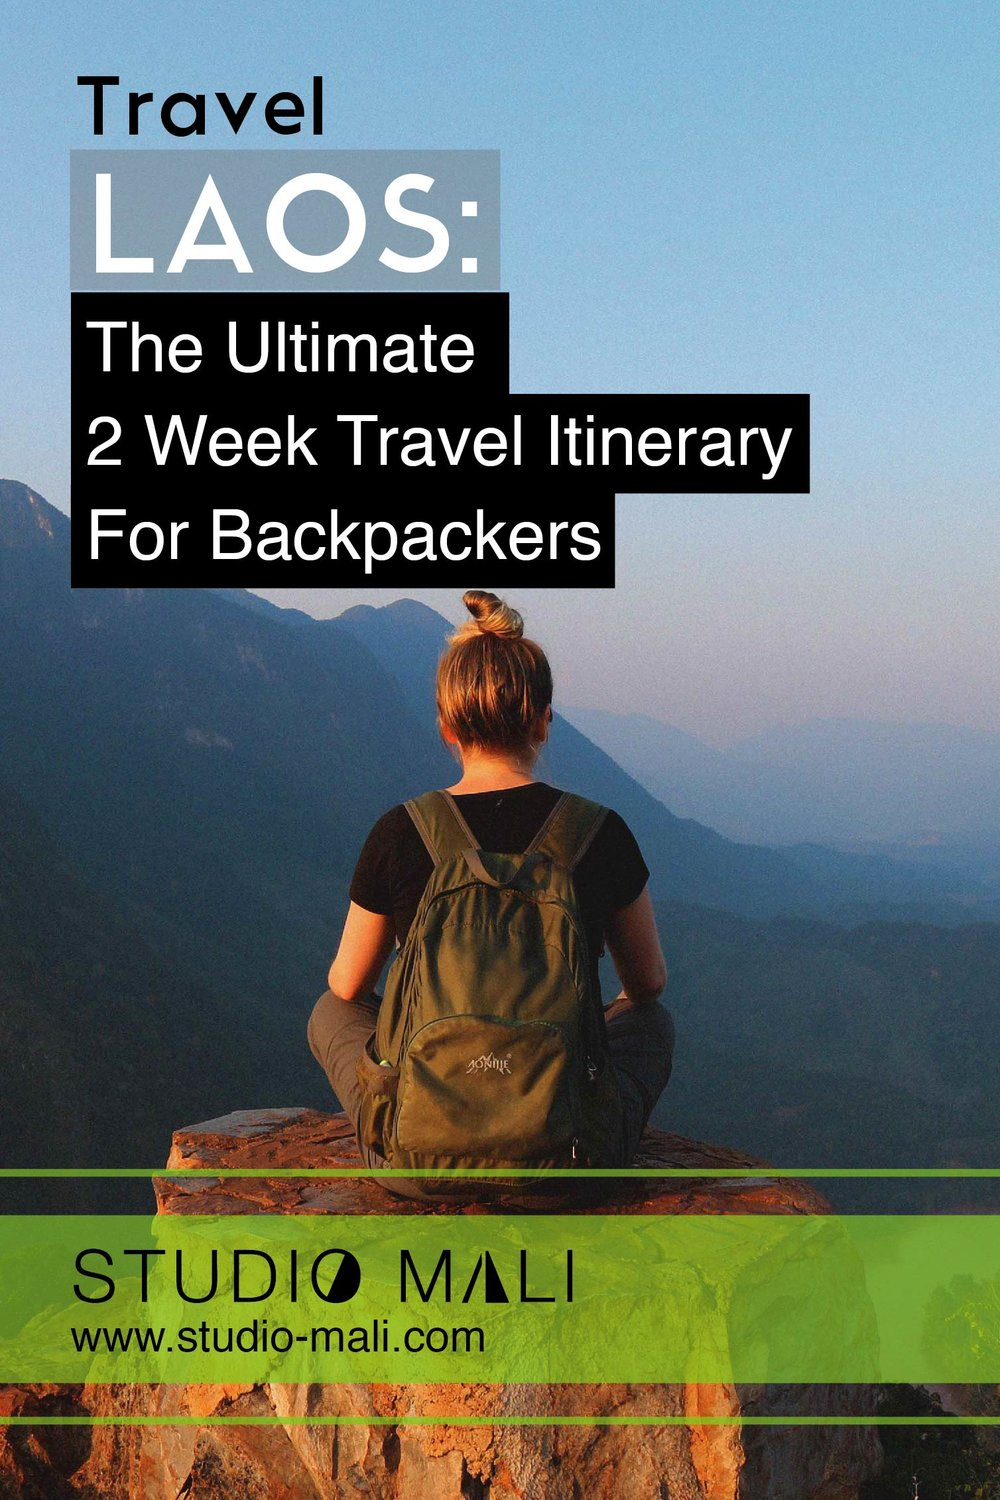 Laos - The Ultimate 2 Week Travel Itinerary For Backpackers, by Studio Mali